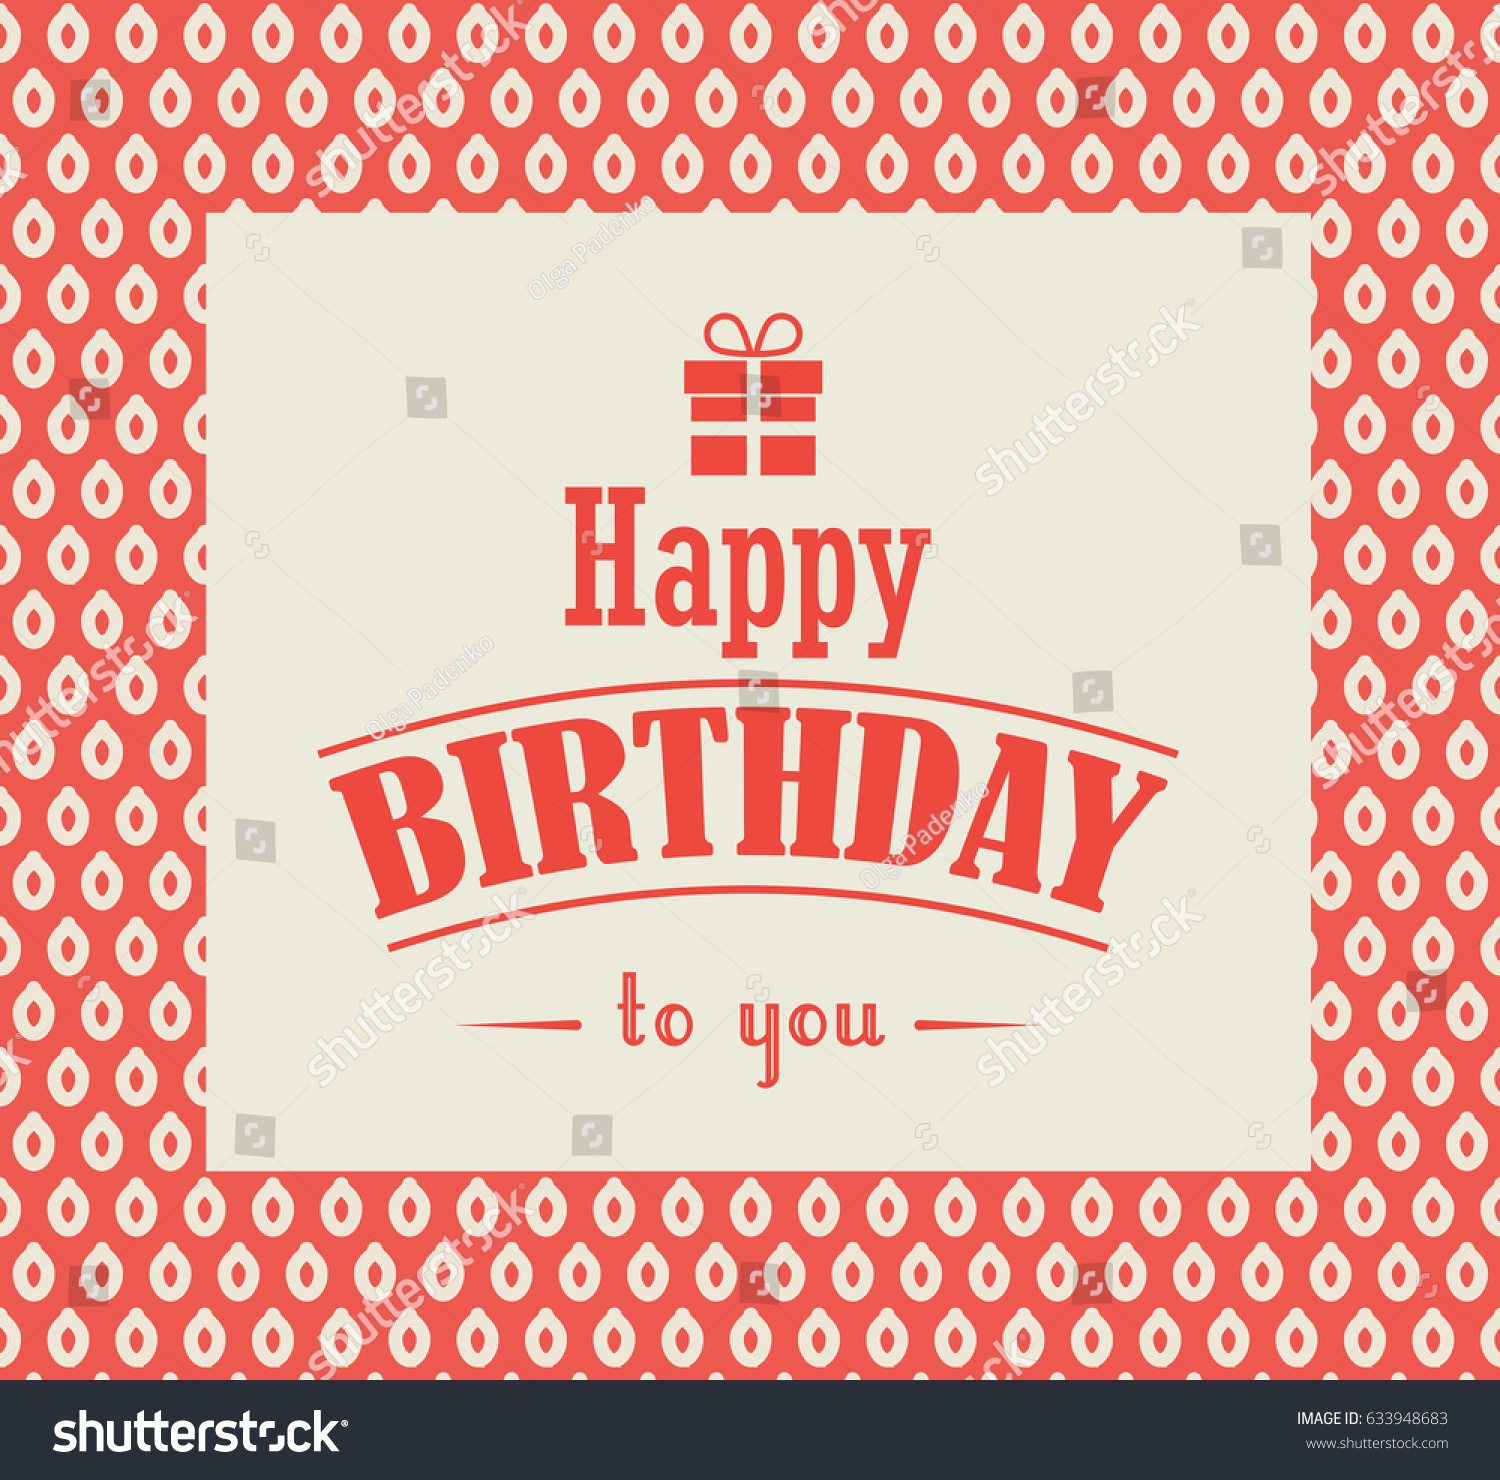 Happy Birthday Greeting Card Vintage Style Stock Vector Hd Royalty